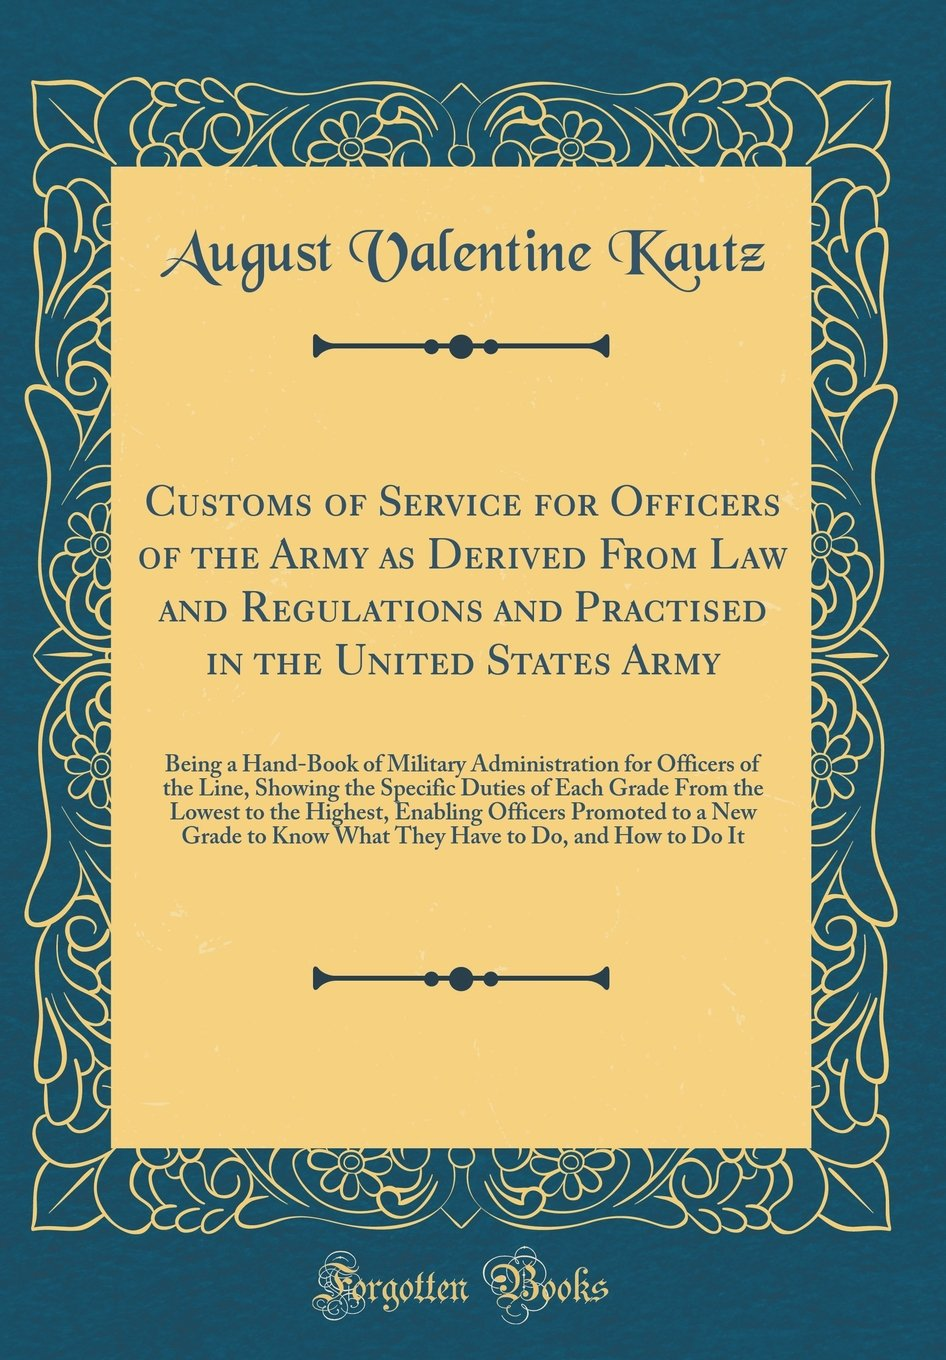 Customs of Service for Officers of the Army as Derived from Law and Regulations and Practised in the United States Army: Being a Hand-Book of Military ... Duties of Each Grade from the Lowest to Th pdf